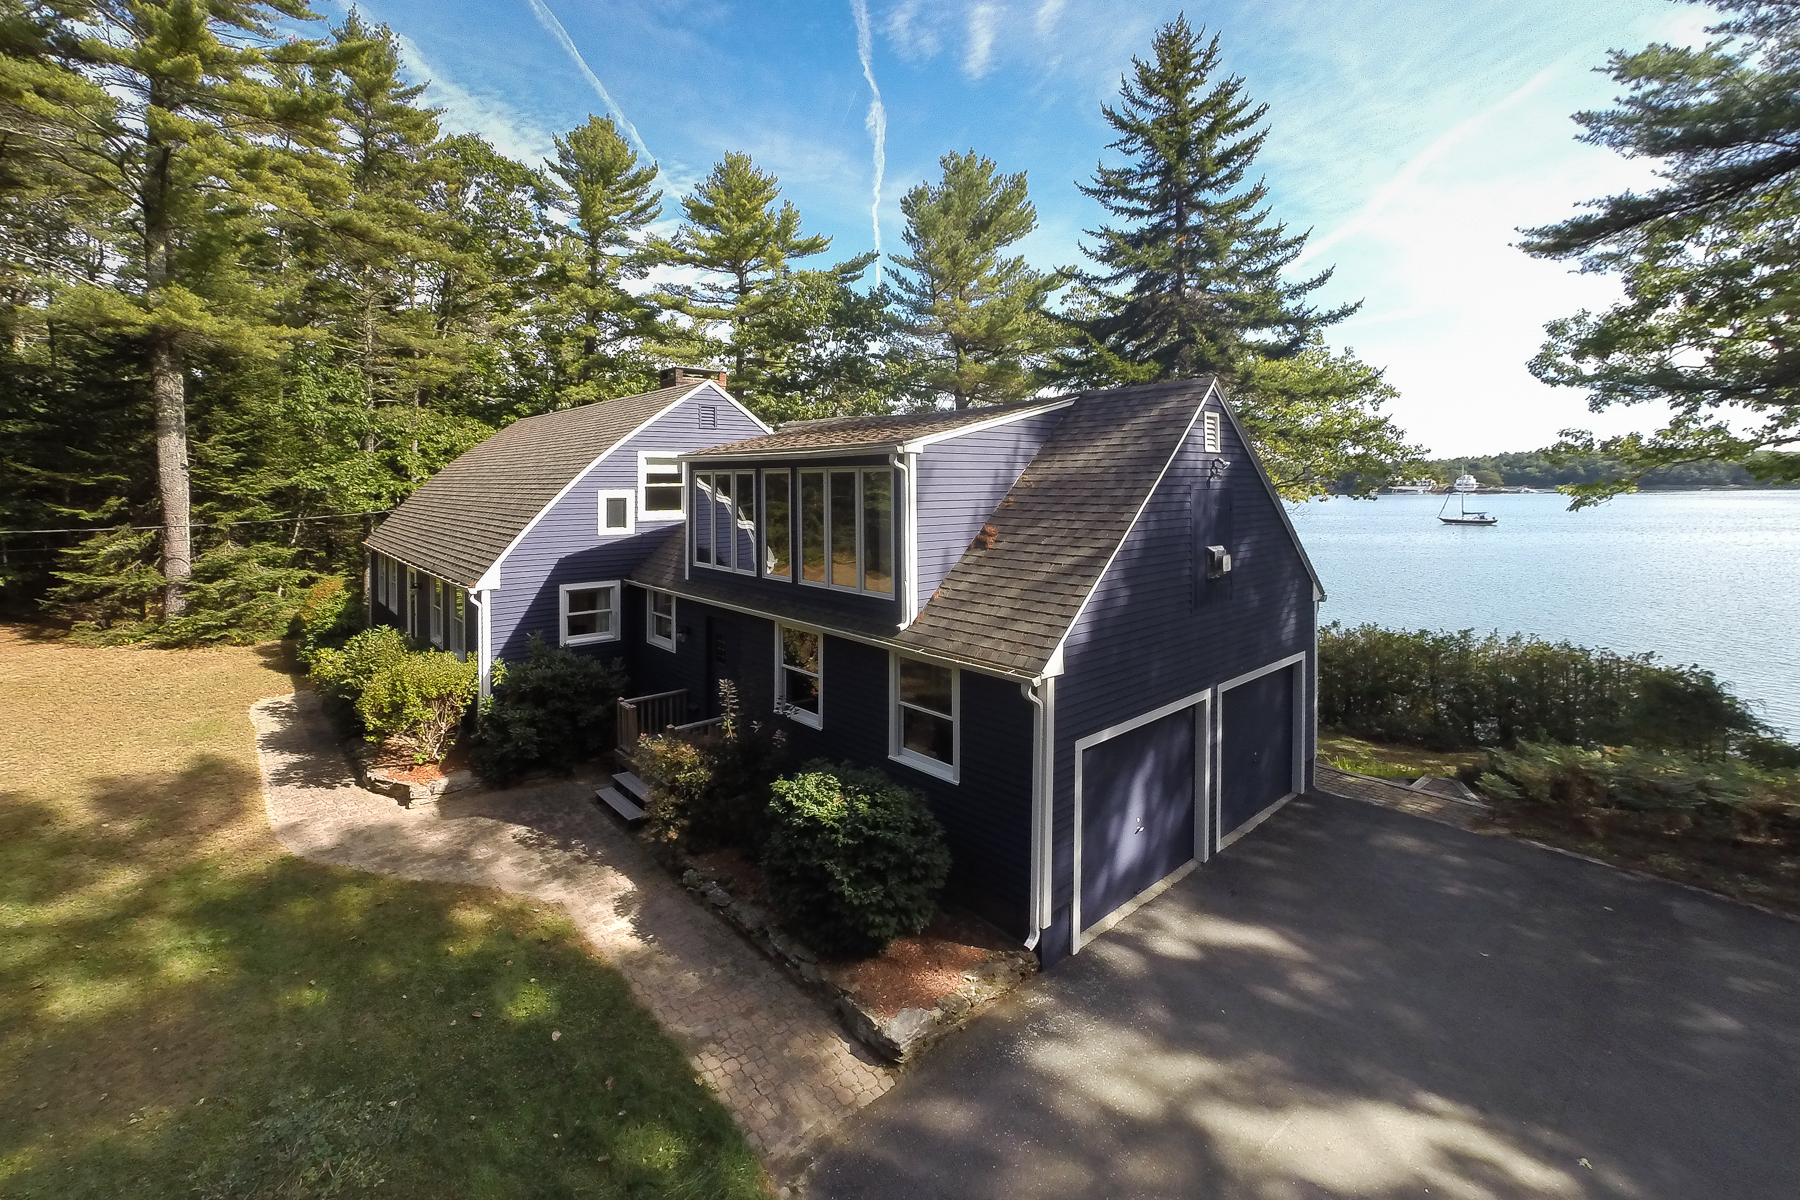 Single Family Home for Sale at 316 Oak Ledge 316 Oak Ledge Road Harpswell, Maine 04079 United States